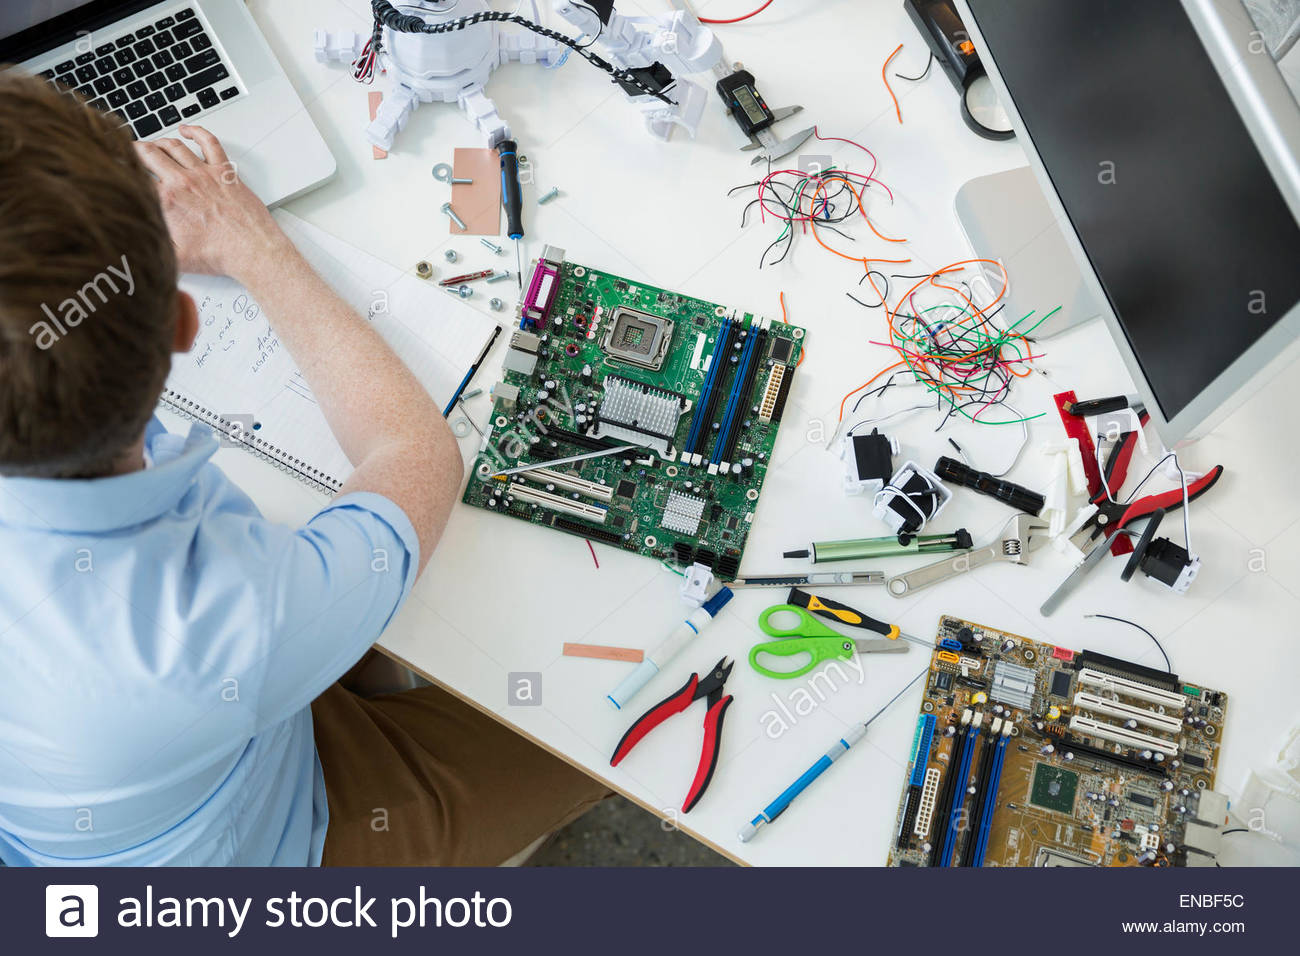 L'assemblage de circuits imprimés et ingénieur working at laptop Photo Stock